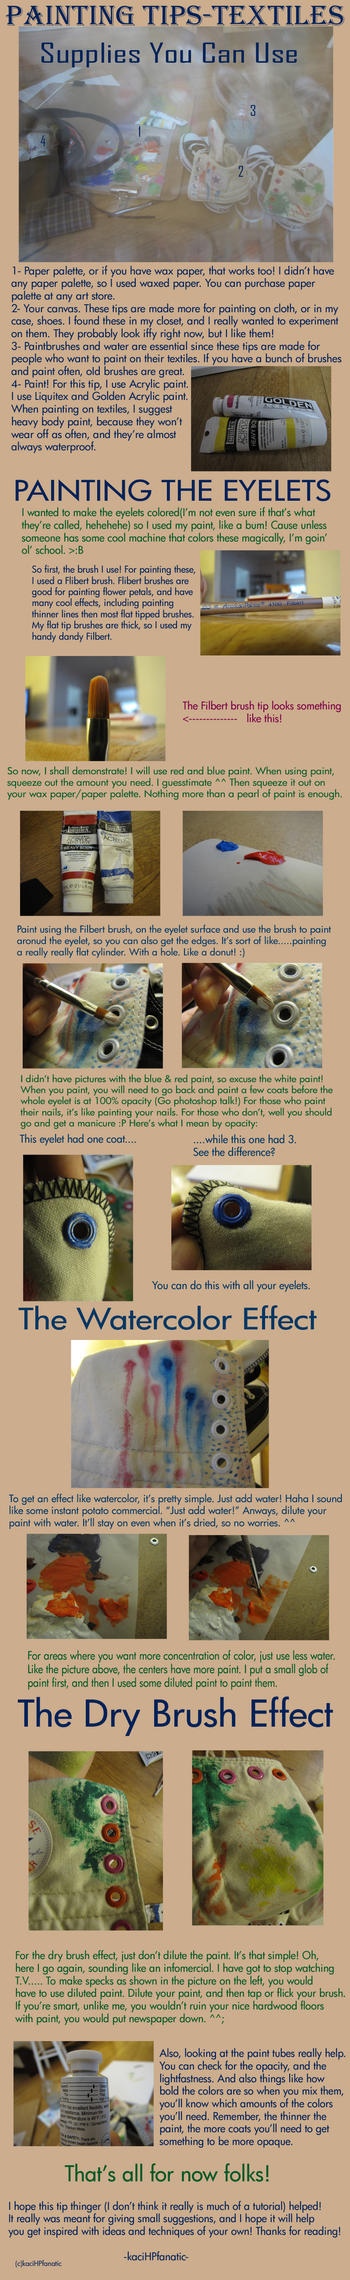 Painting Tips For Textiles by KaciHPfanatic